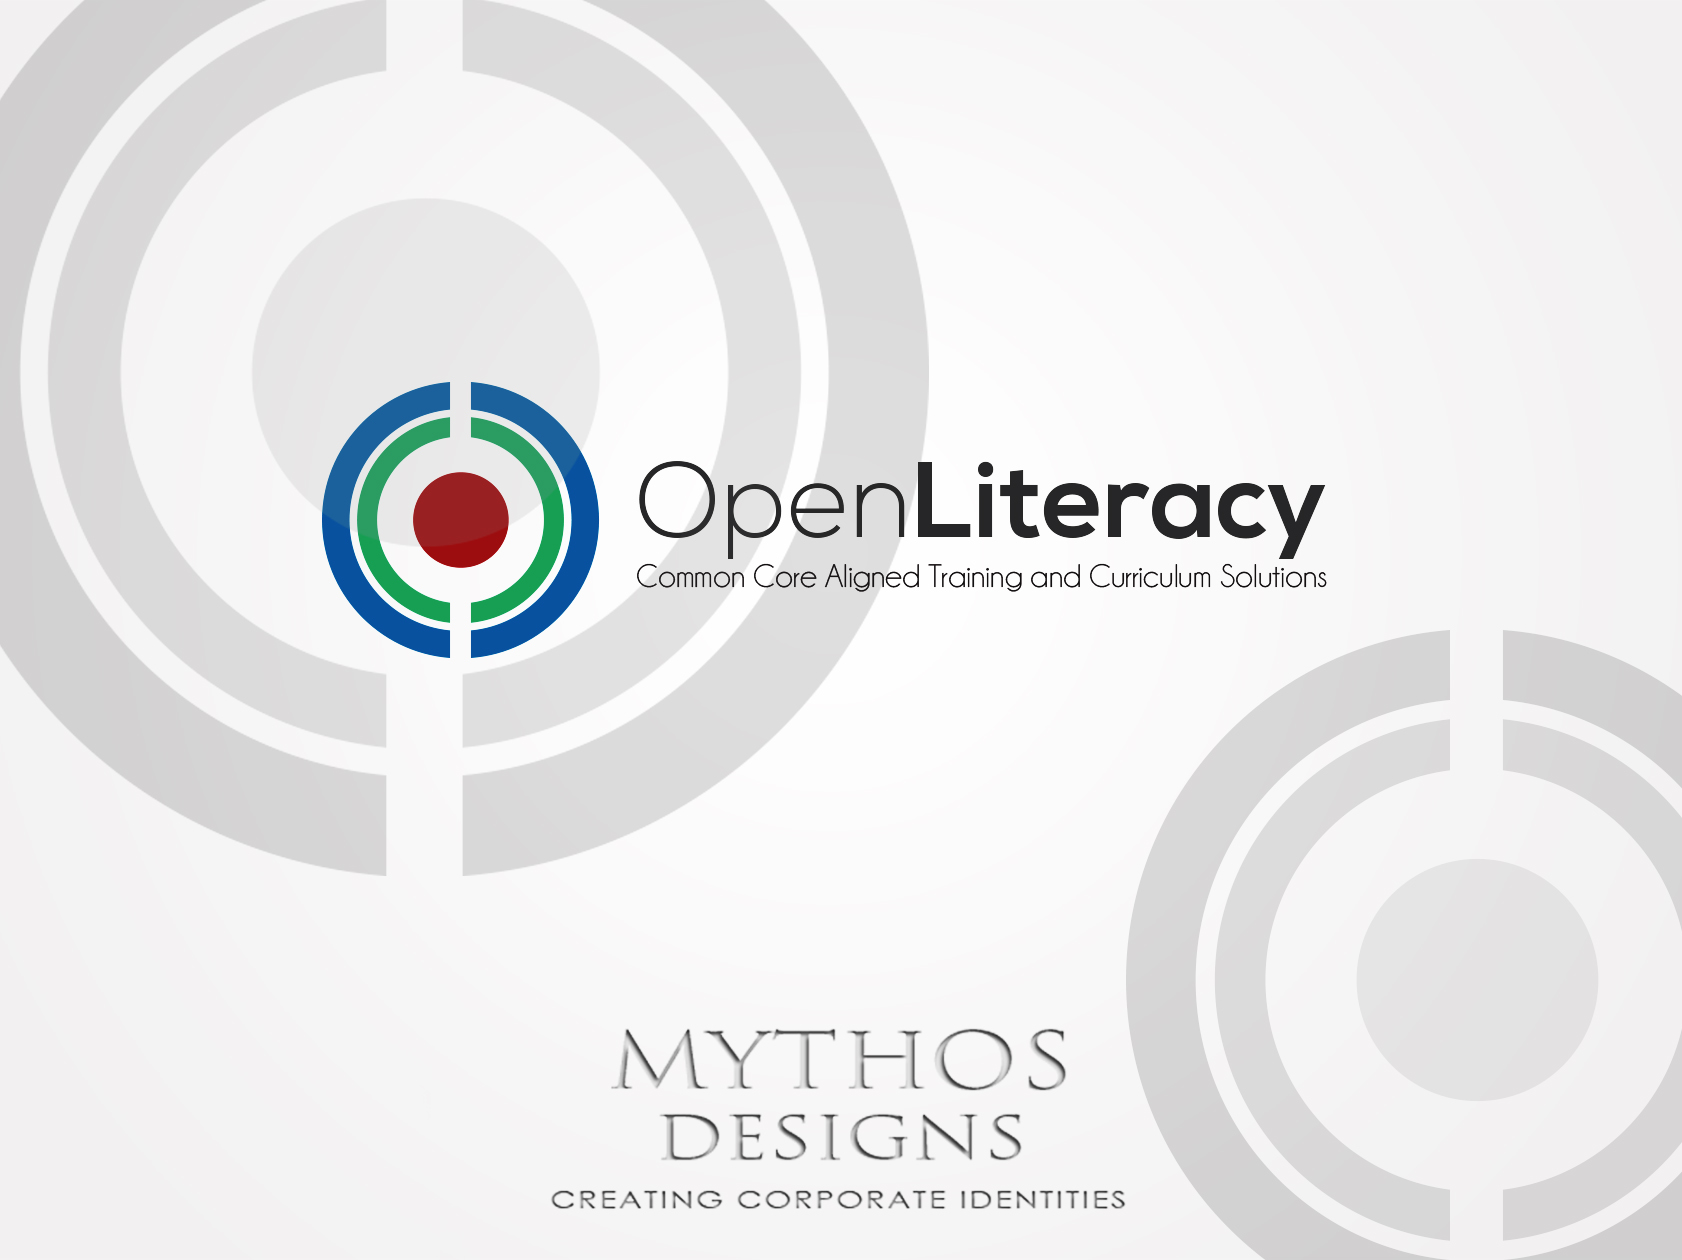 Logo Design by Mythos Designs - Entry No. 97 in the Logo Design Contest Inspiring Logo Design for OpenLiteracy.